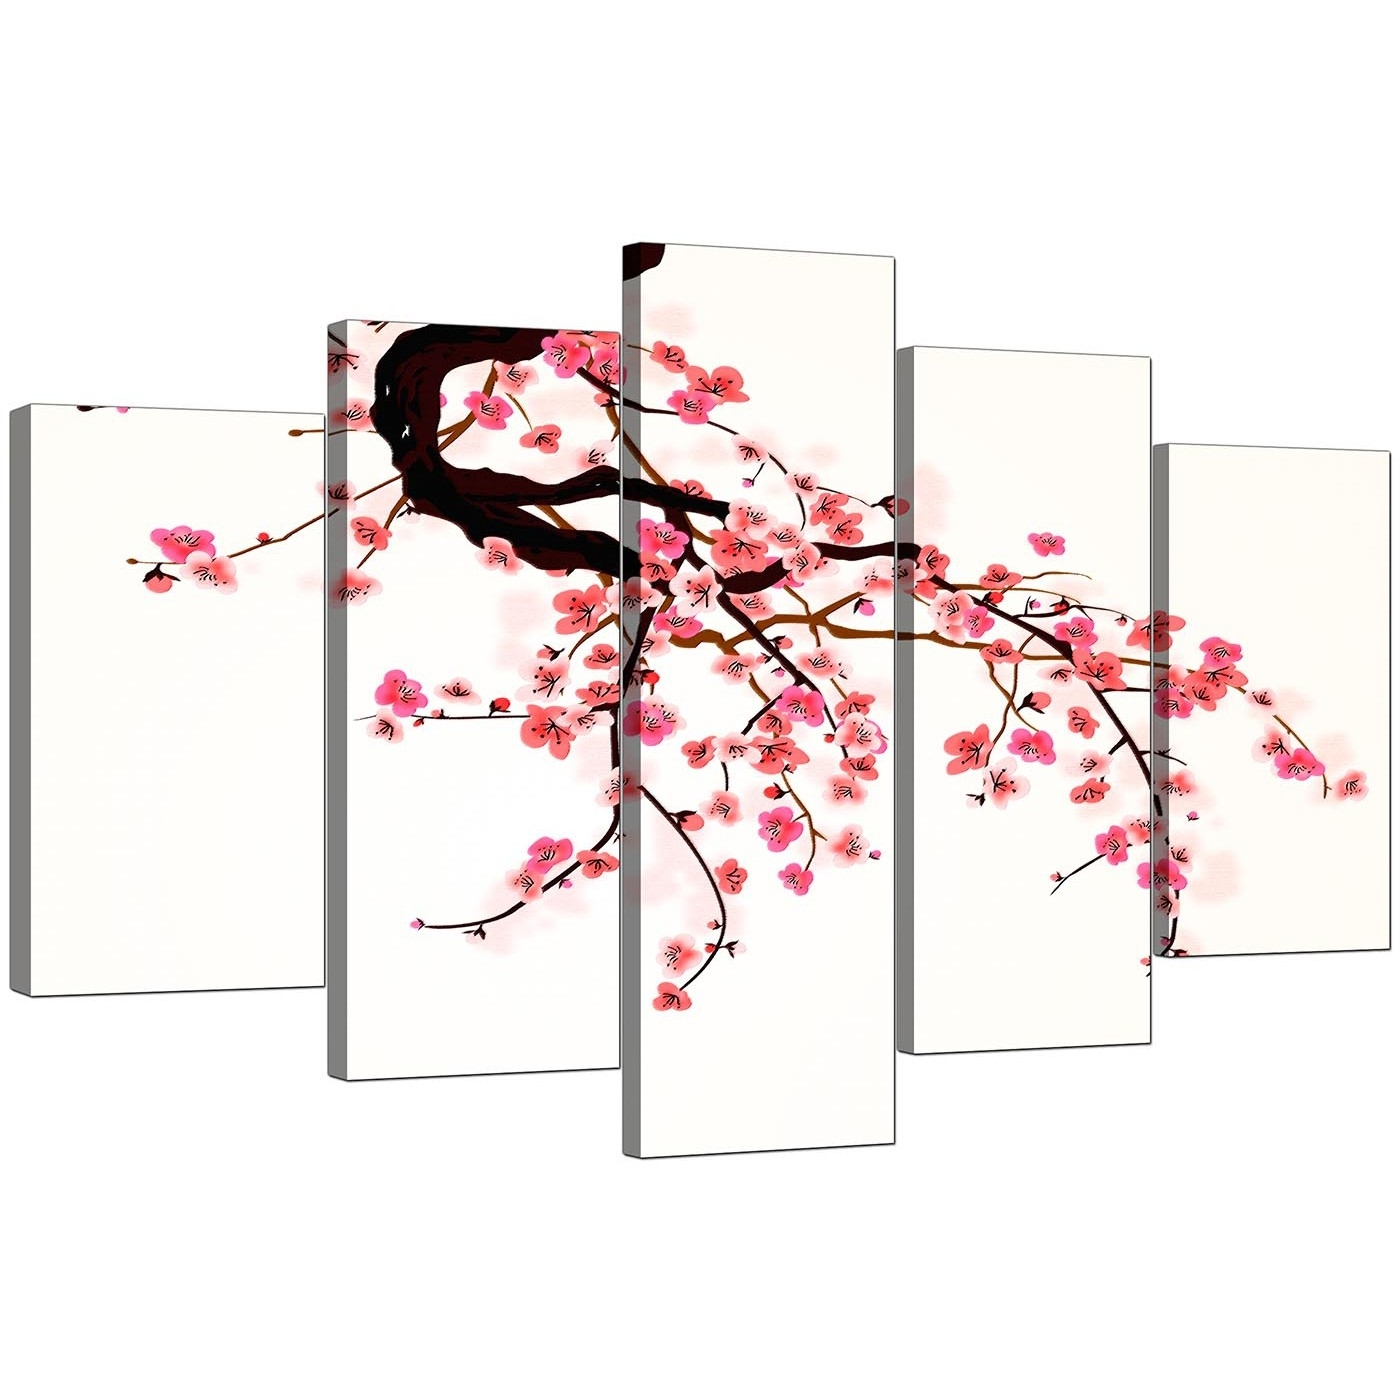 Extra Large Flowers Canvas Wall Art Set Of 5 In Pink With Regard To 2017 Cherry Blossom Wall Art (View 18 of 20)